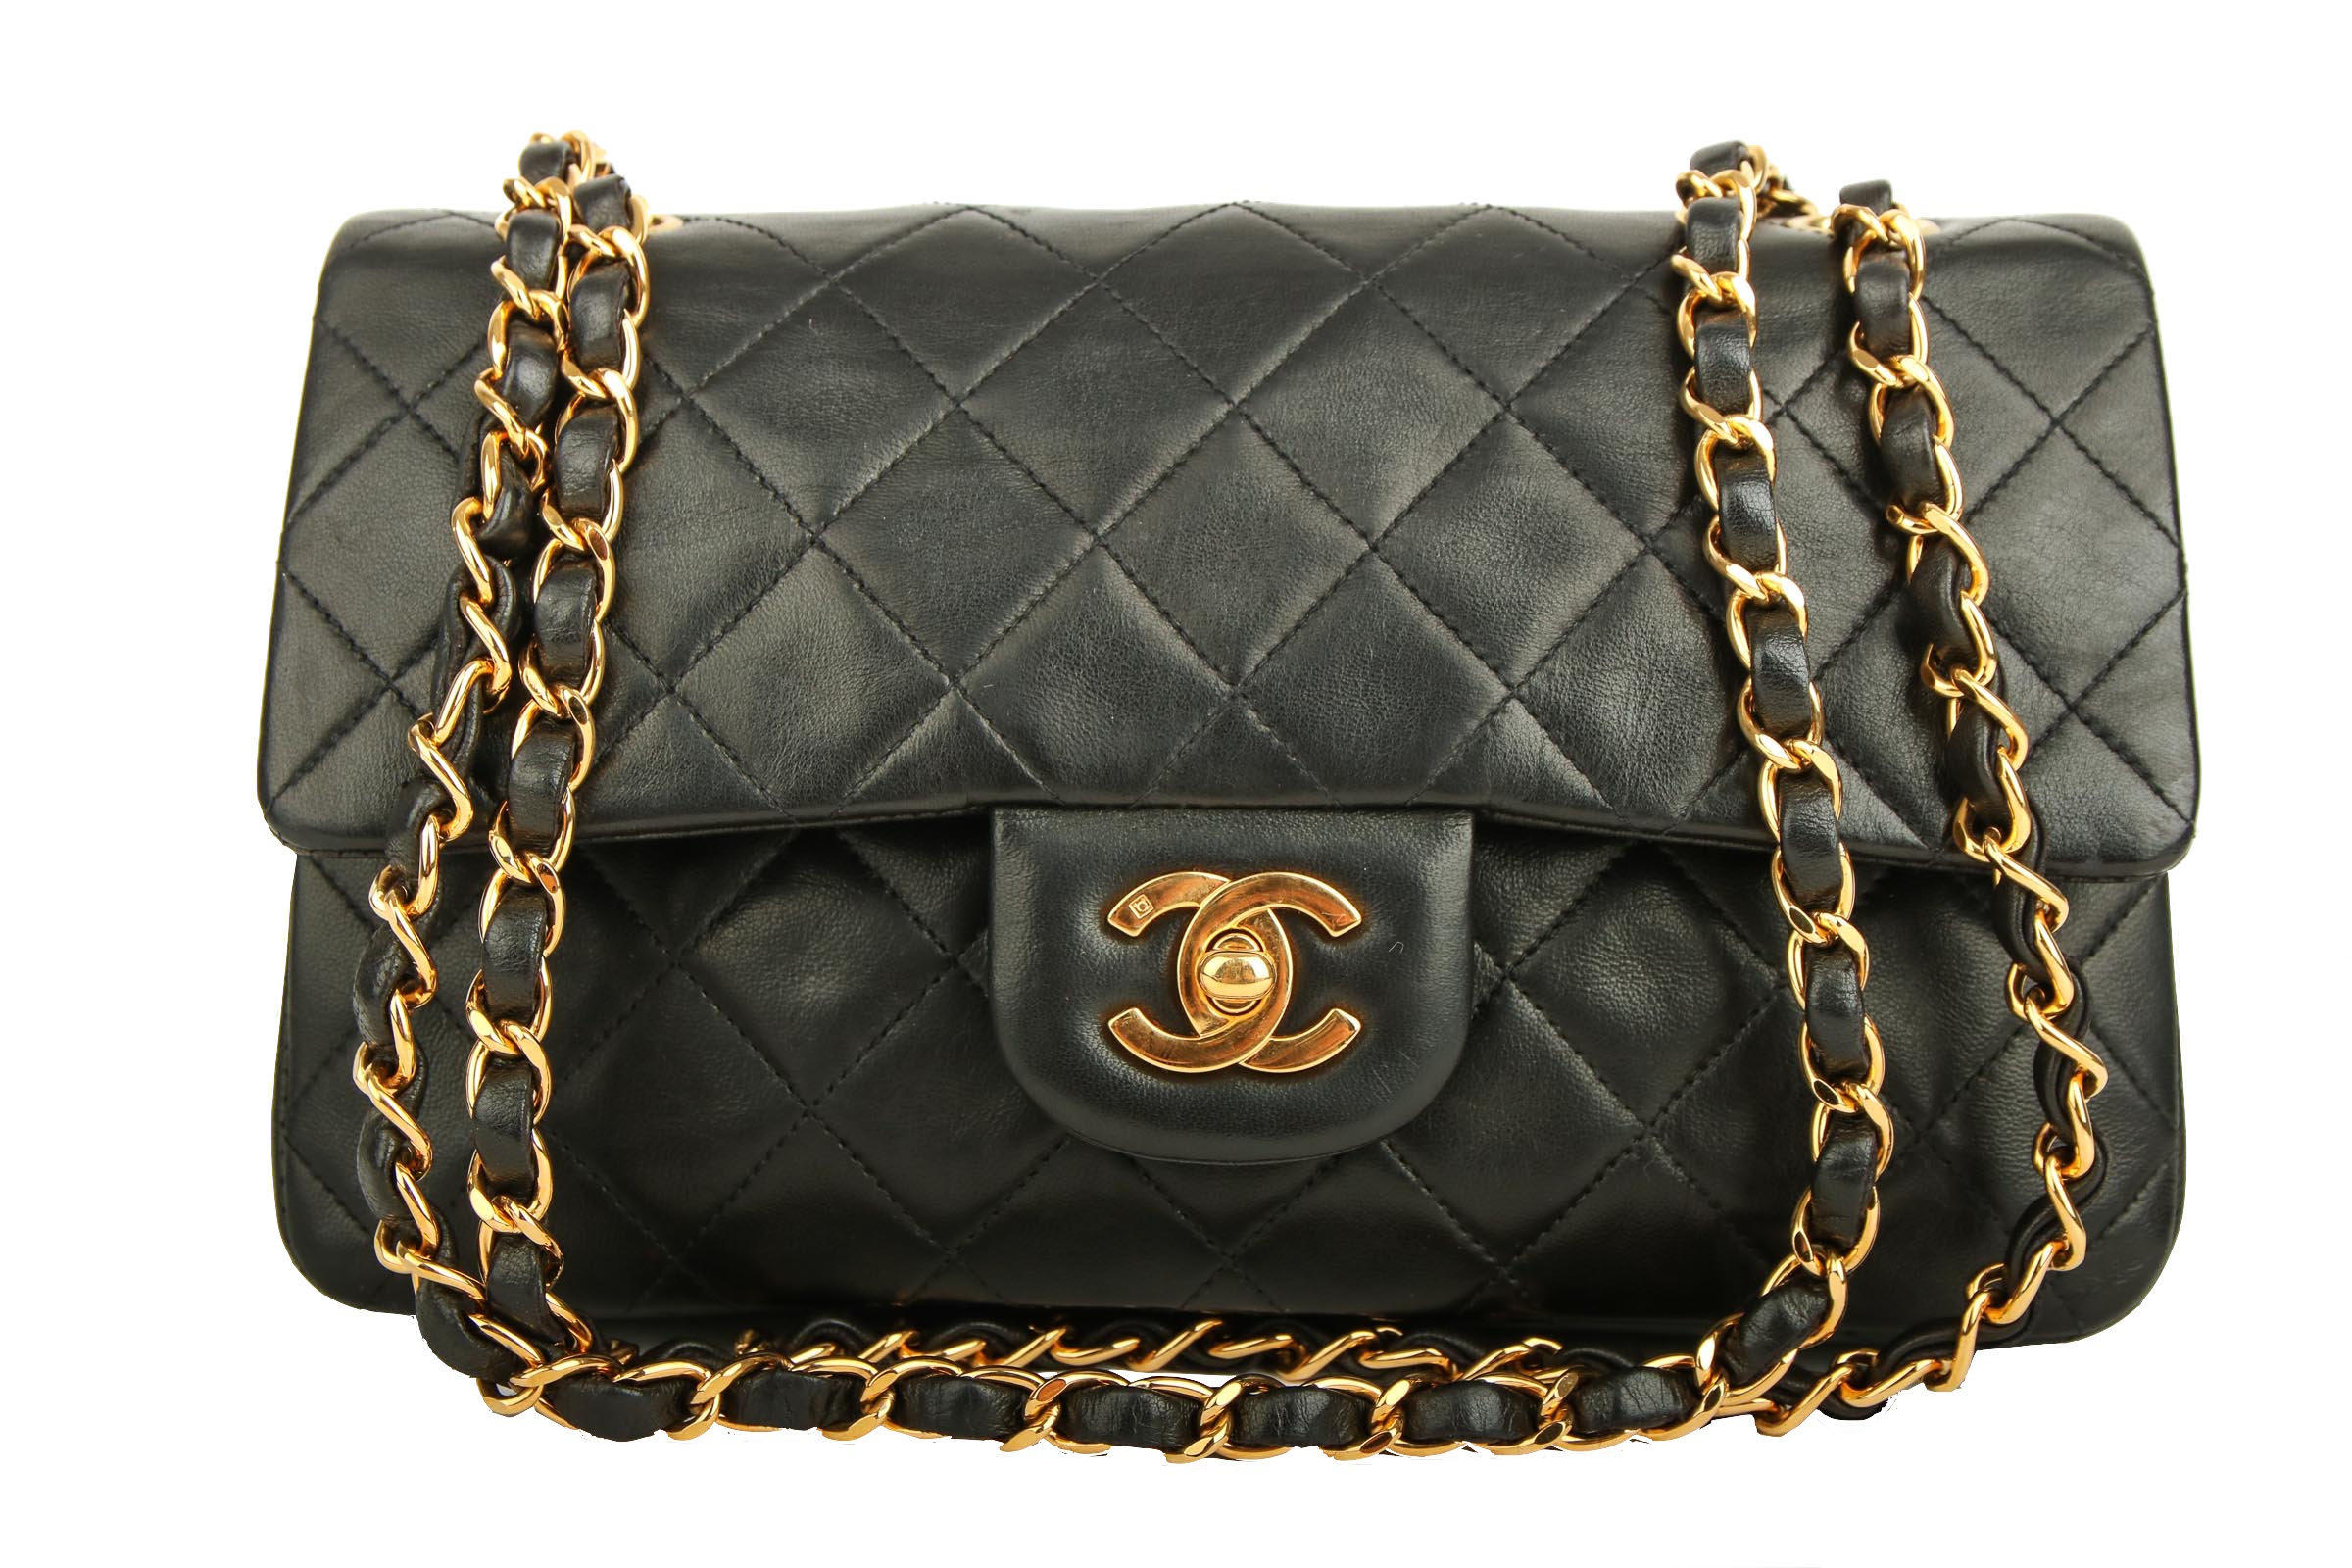 0e5b5c6838af8 Preview  Chanel Timeless Classic Double Flap Small Schwarz. Preview  Chanel  Timeless Classic Double Flap Small Schwarz